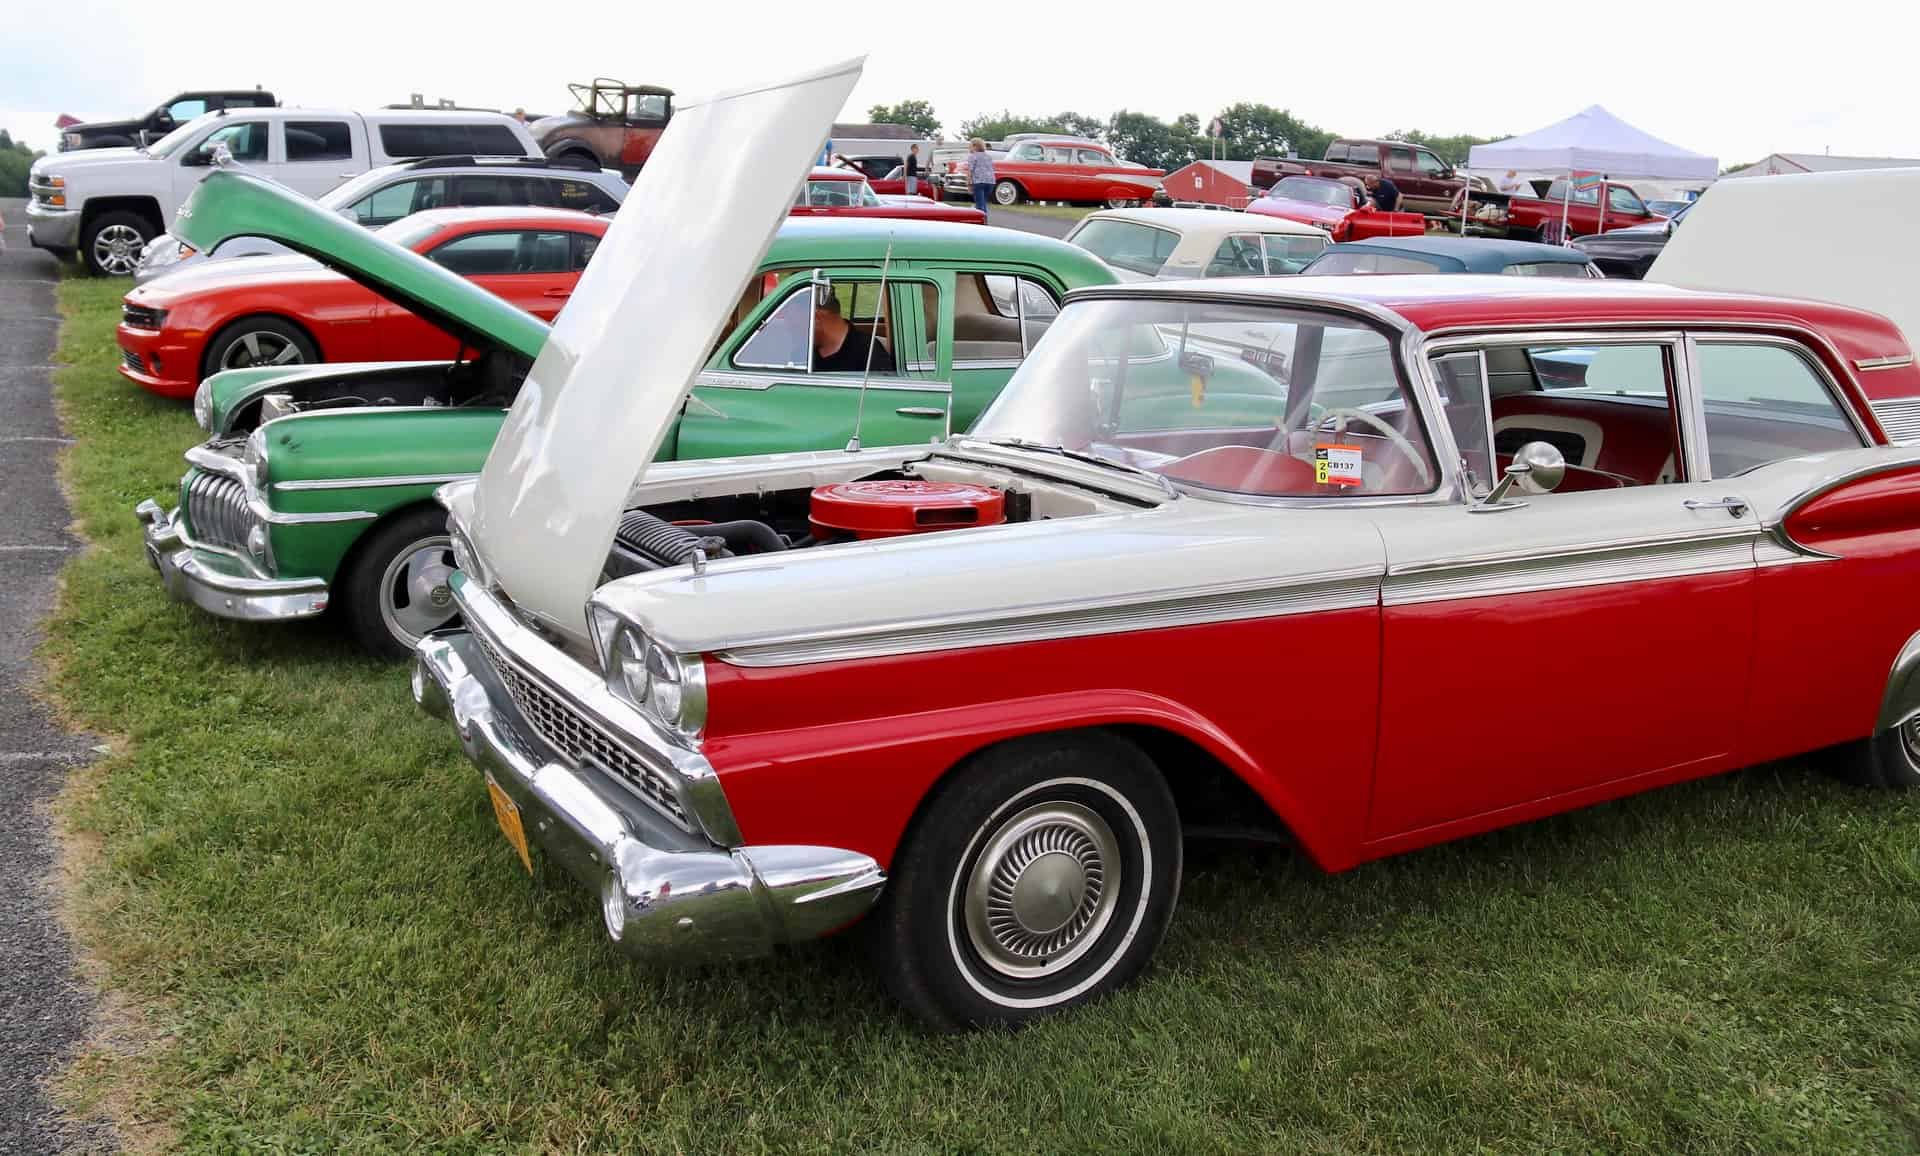 Carlisle, Carlisle Events reflects on Spring Carlisle controversy, ClassicCars.com Journal